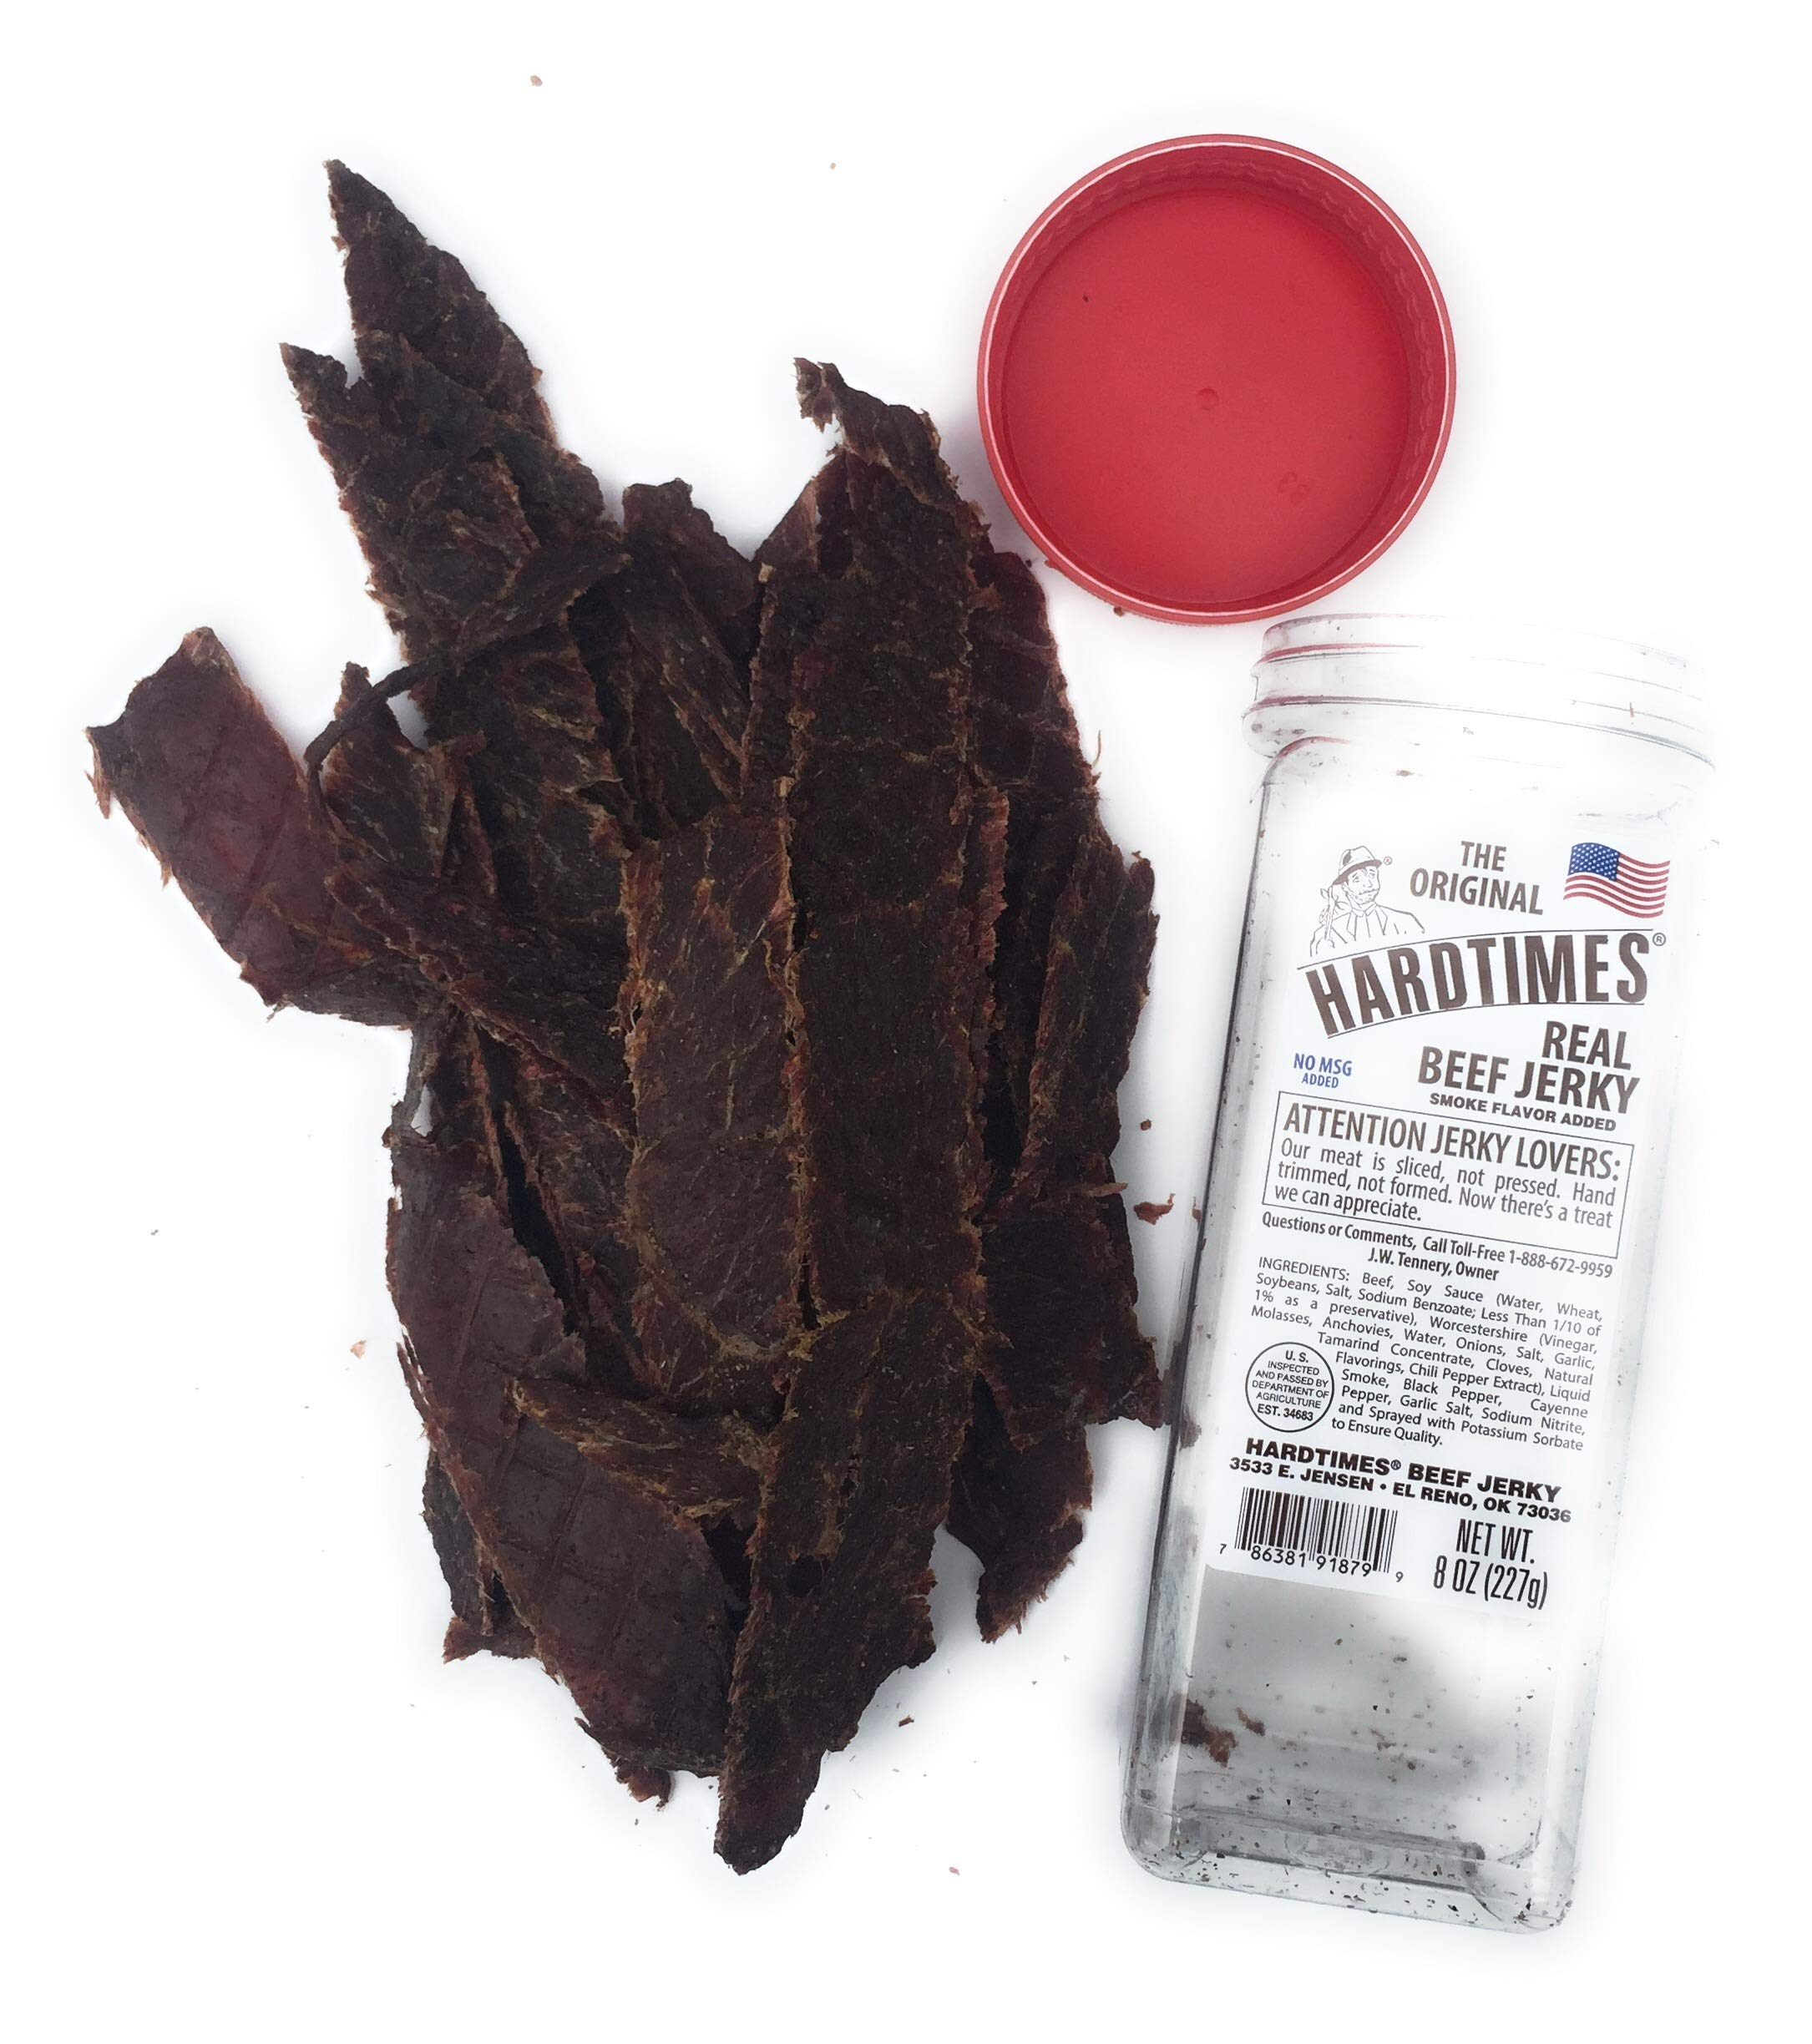 HARD TIMES 8oz Jar Original Real Beef Jerky Sliced Hand Trimmed Dry Tough Jerky For HardTimes by hard times (Image #3)